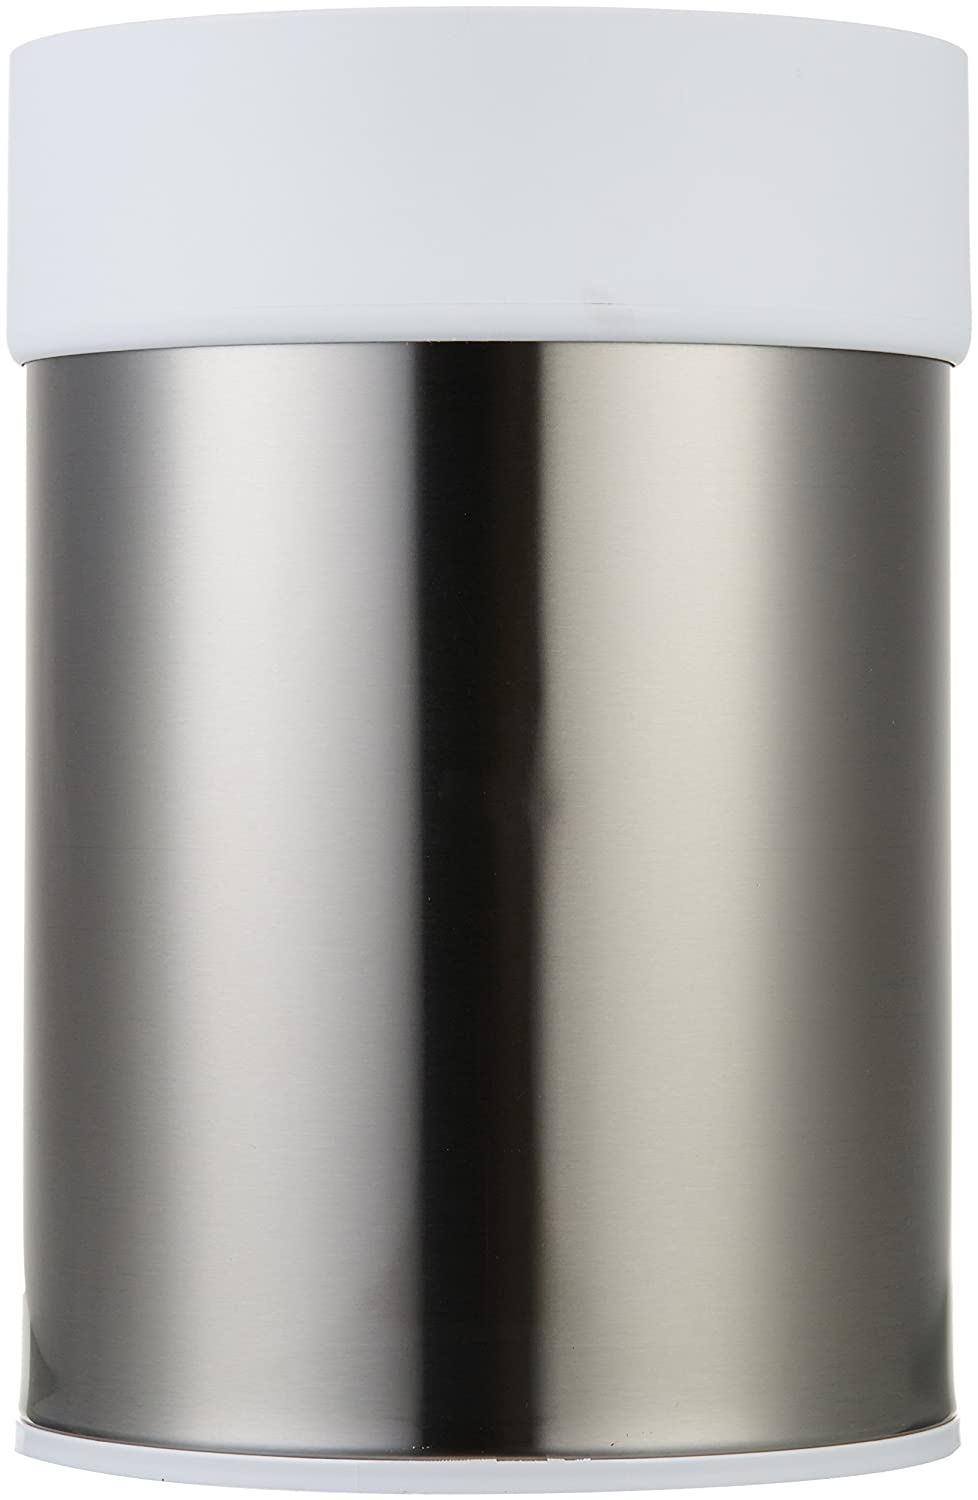 AmazonBasics Stainless Steel Waste Can - White